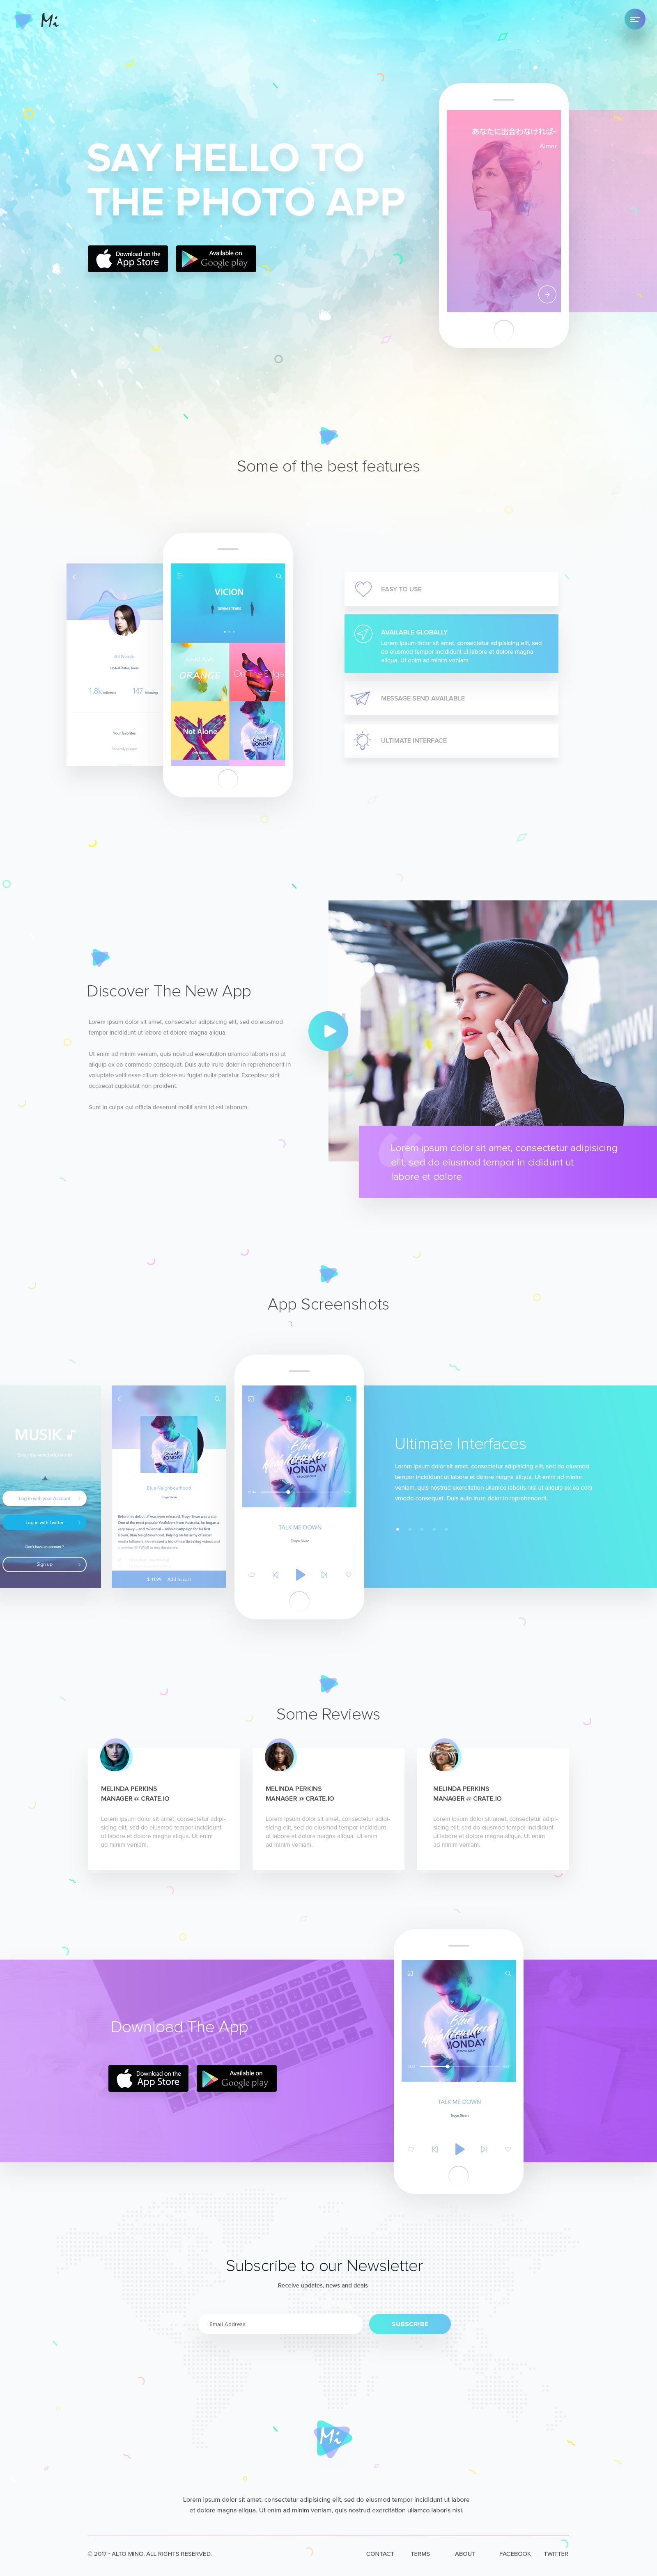 Mobile App Landing Page Tech Design Layout In 2020 Creative Web Design Website Design App Landing Page